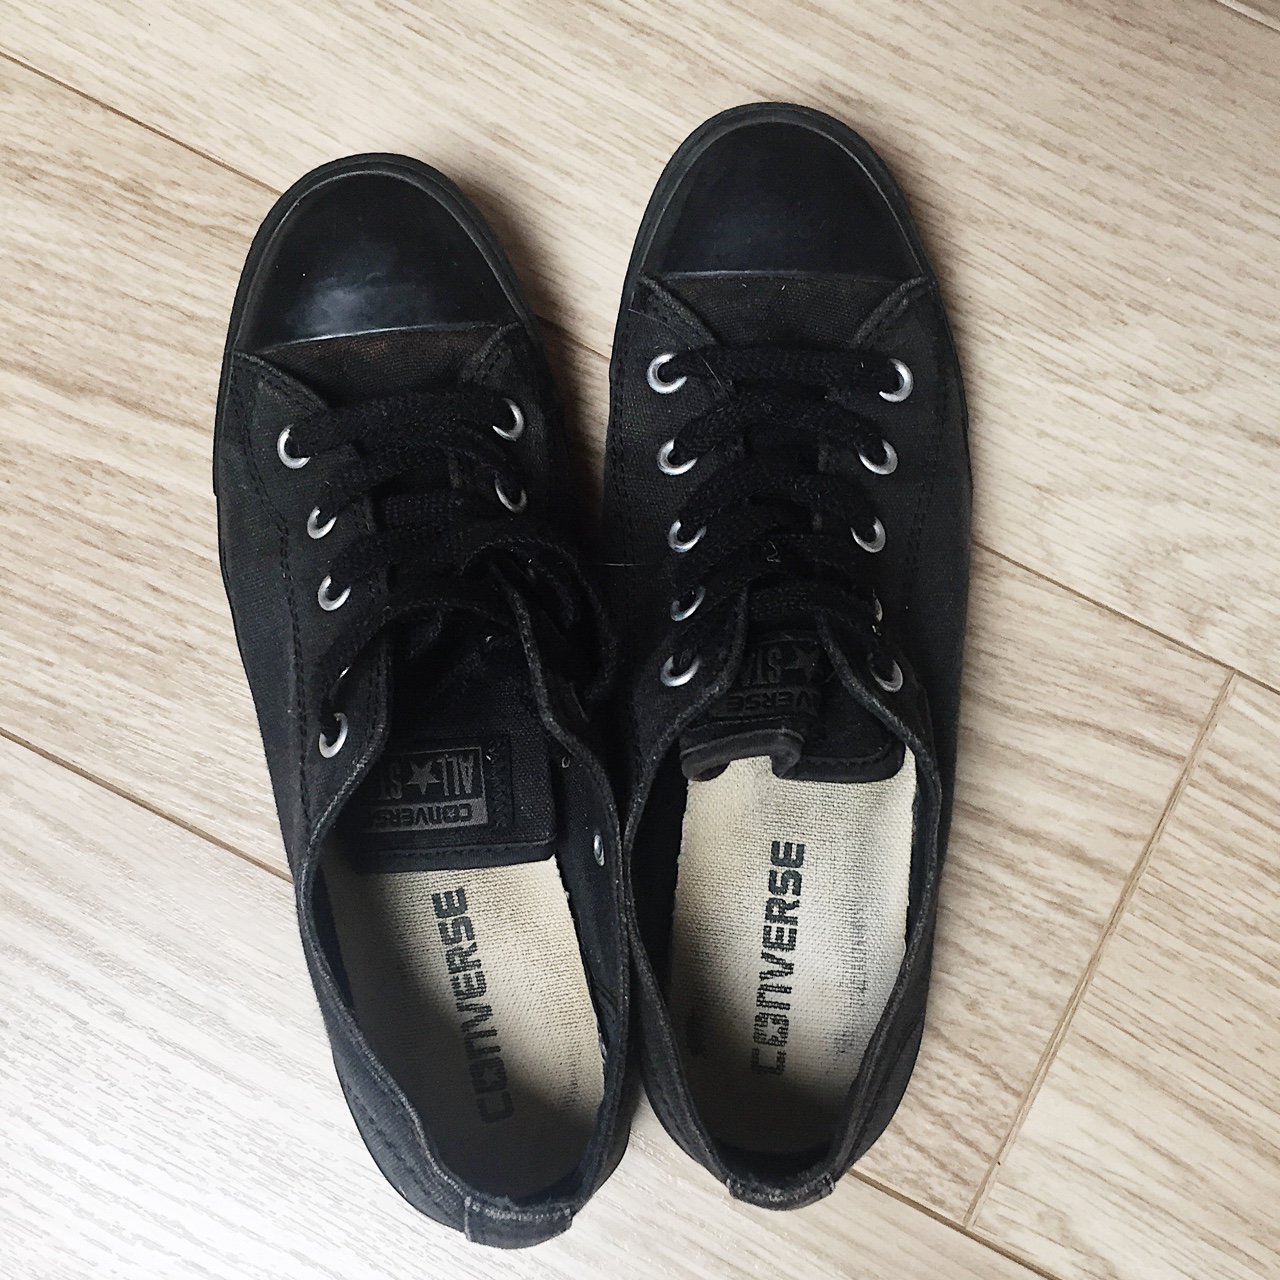 93031b2f822df6 All black converse Size 5 In good condition  converse - Depop